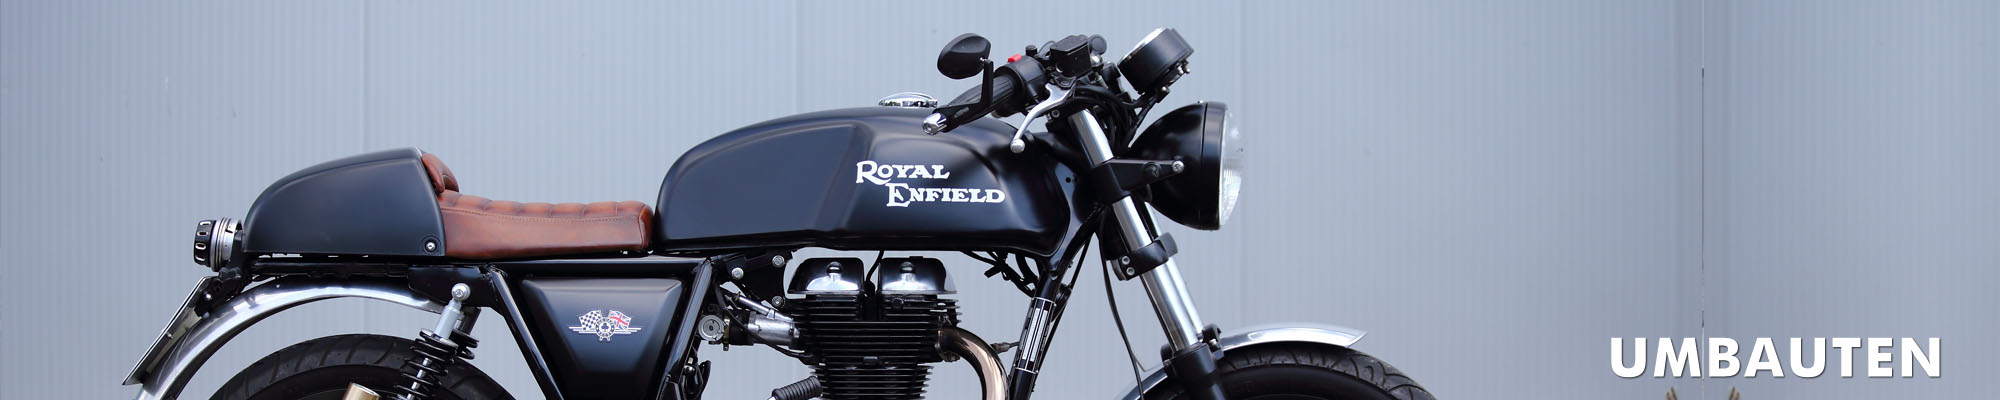 Royal Enfield Umbauten Caferacer